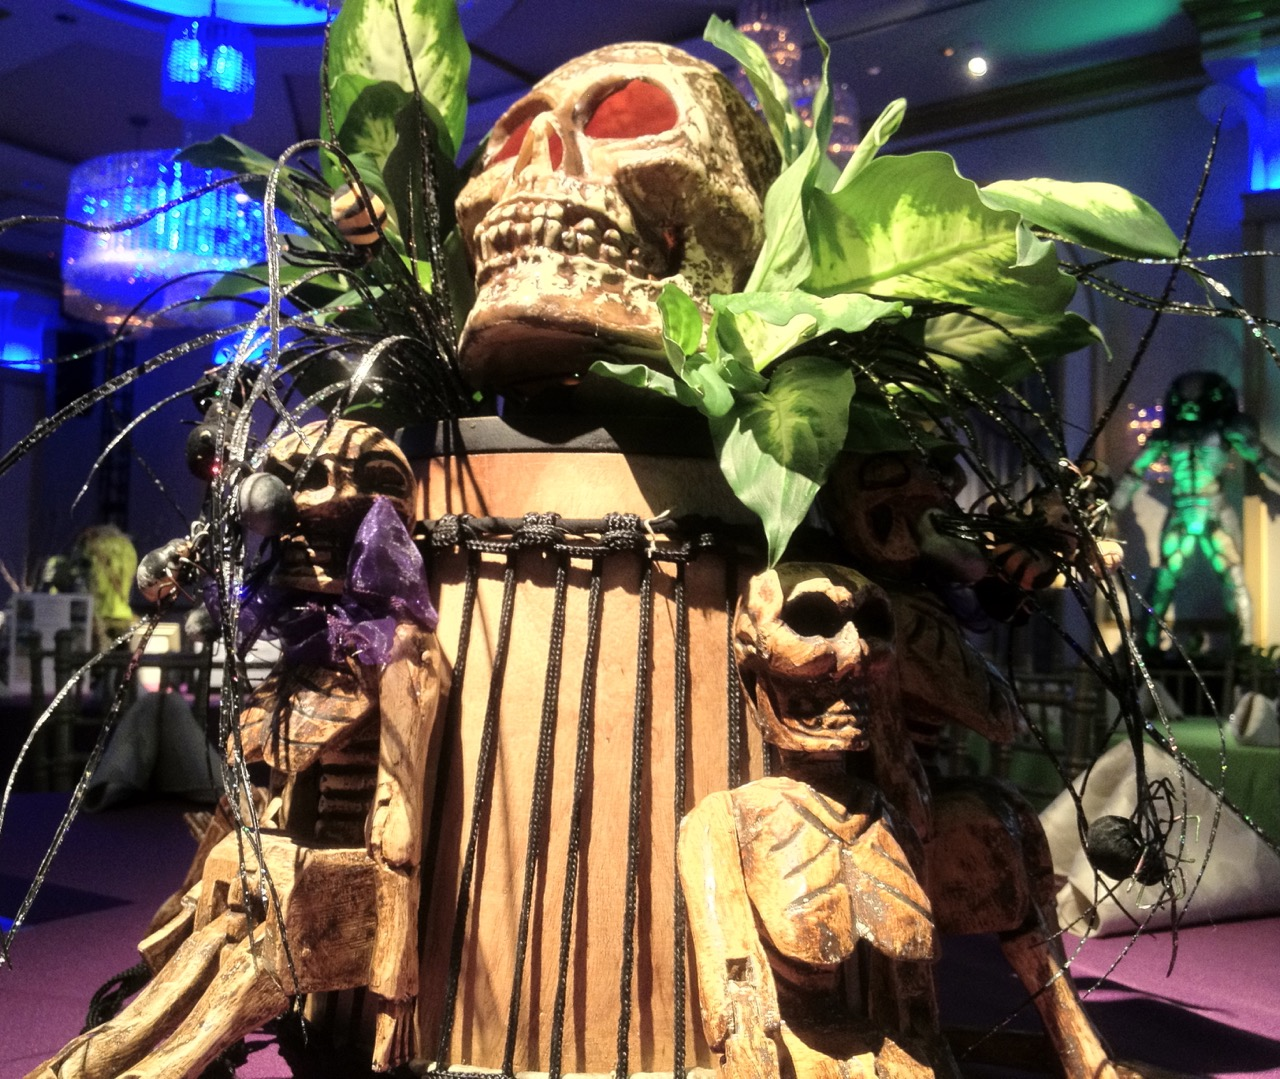 Halloween+Decor+Rentals+from+Eggsotic+Events+NJ+NYC+-+9.jpg